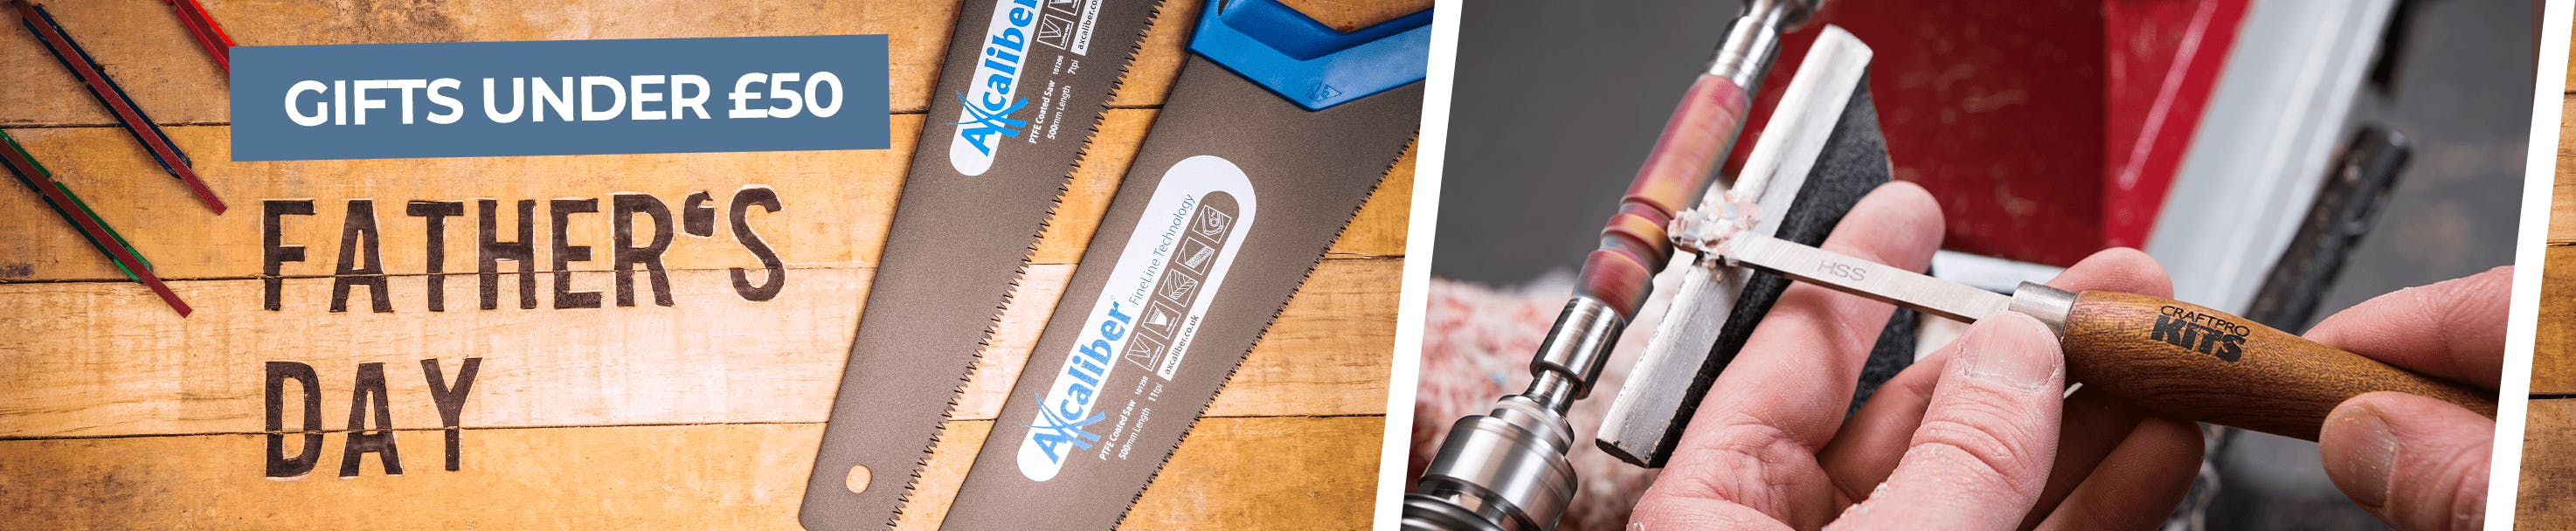 Father's Day Gifts under £50